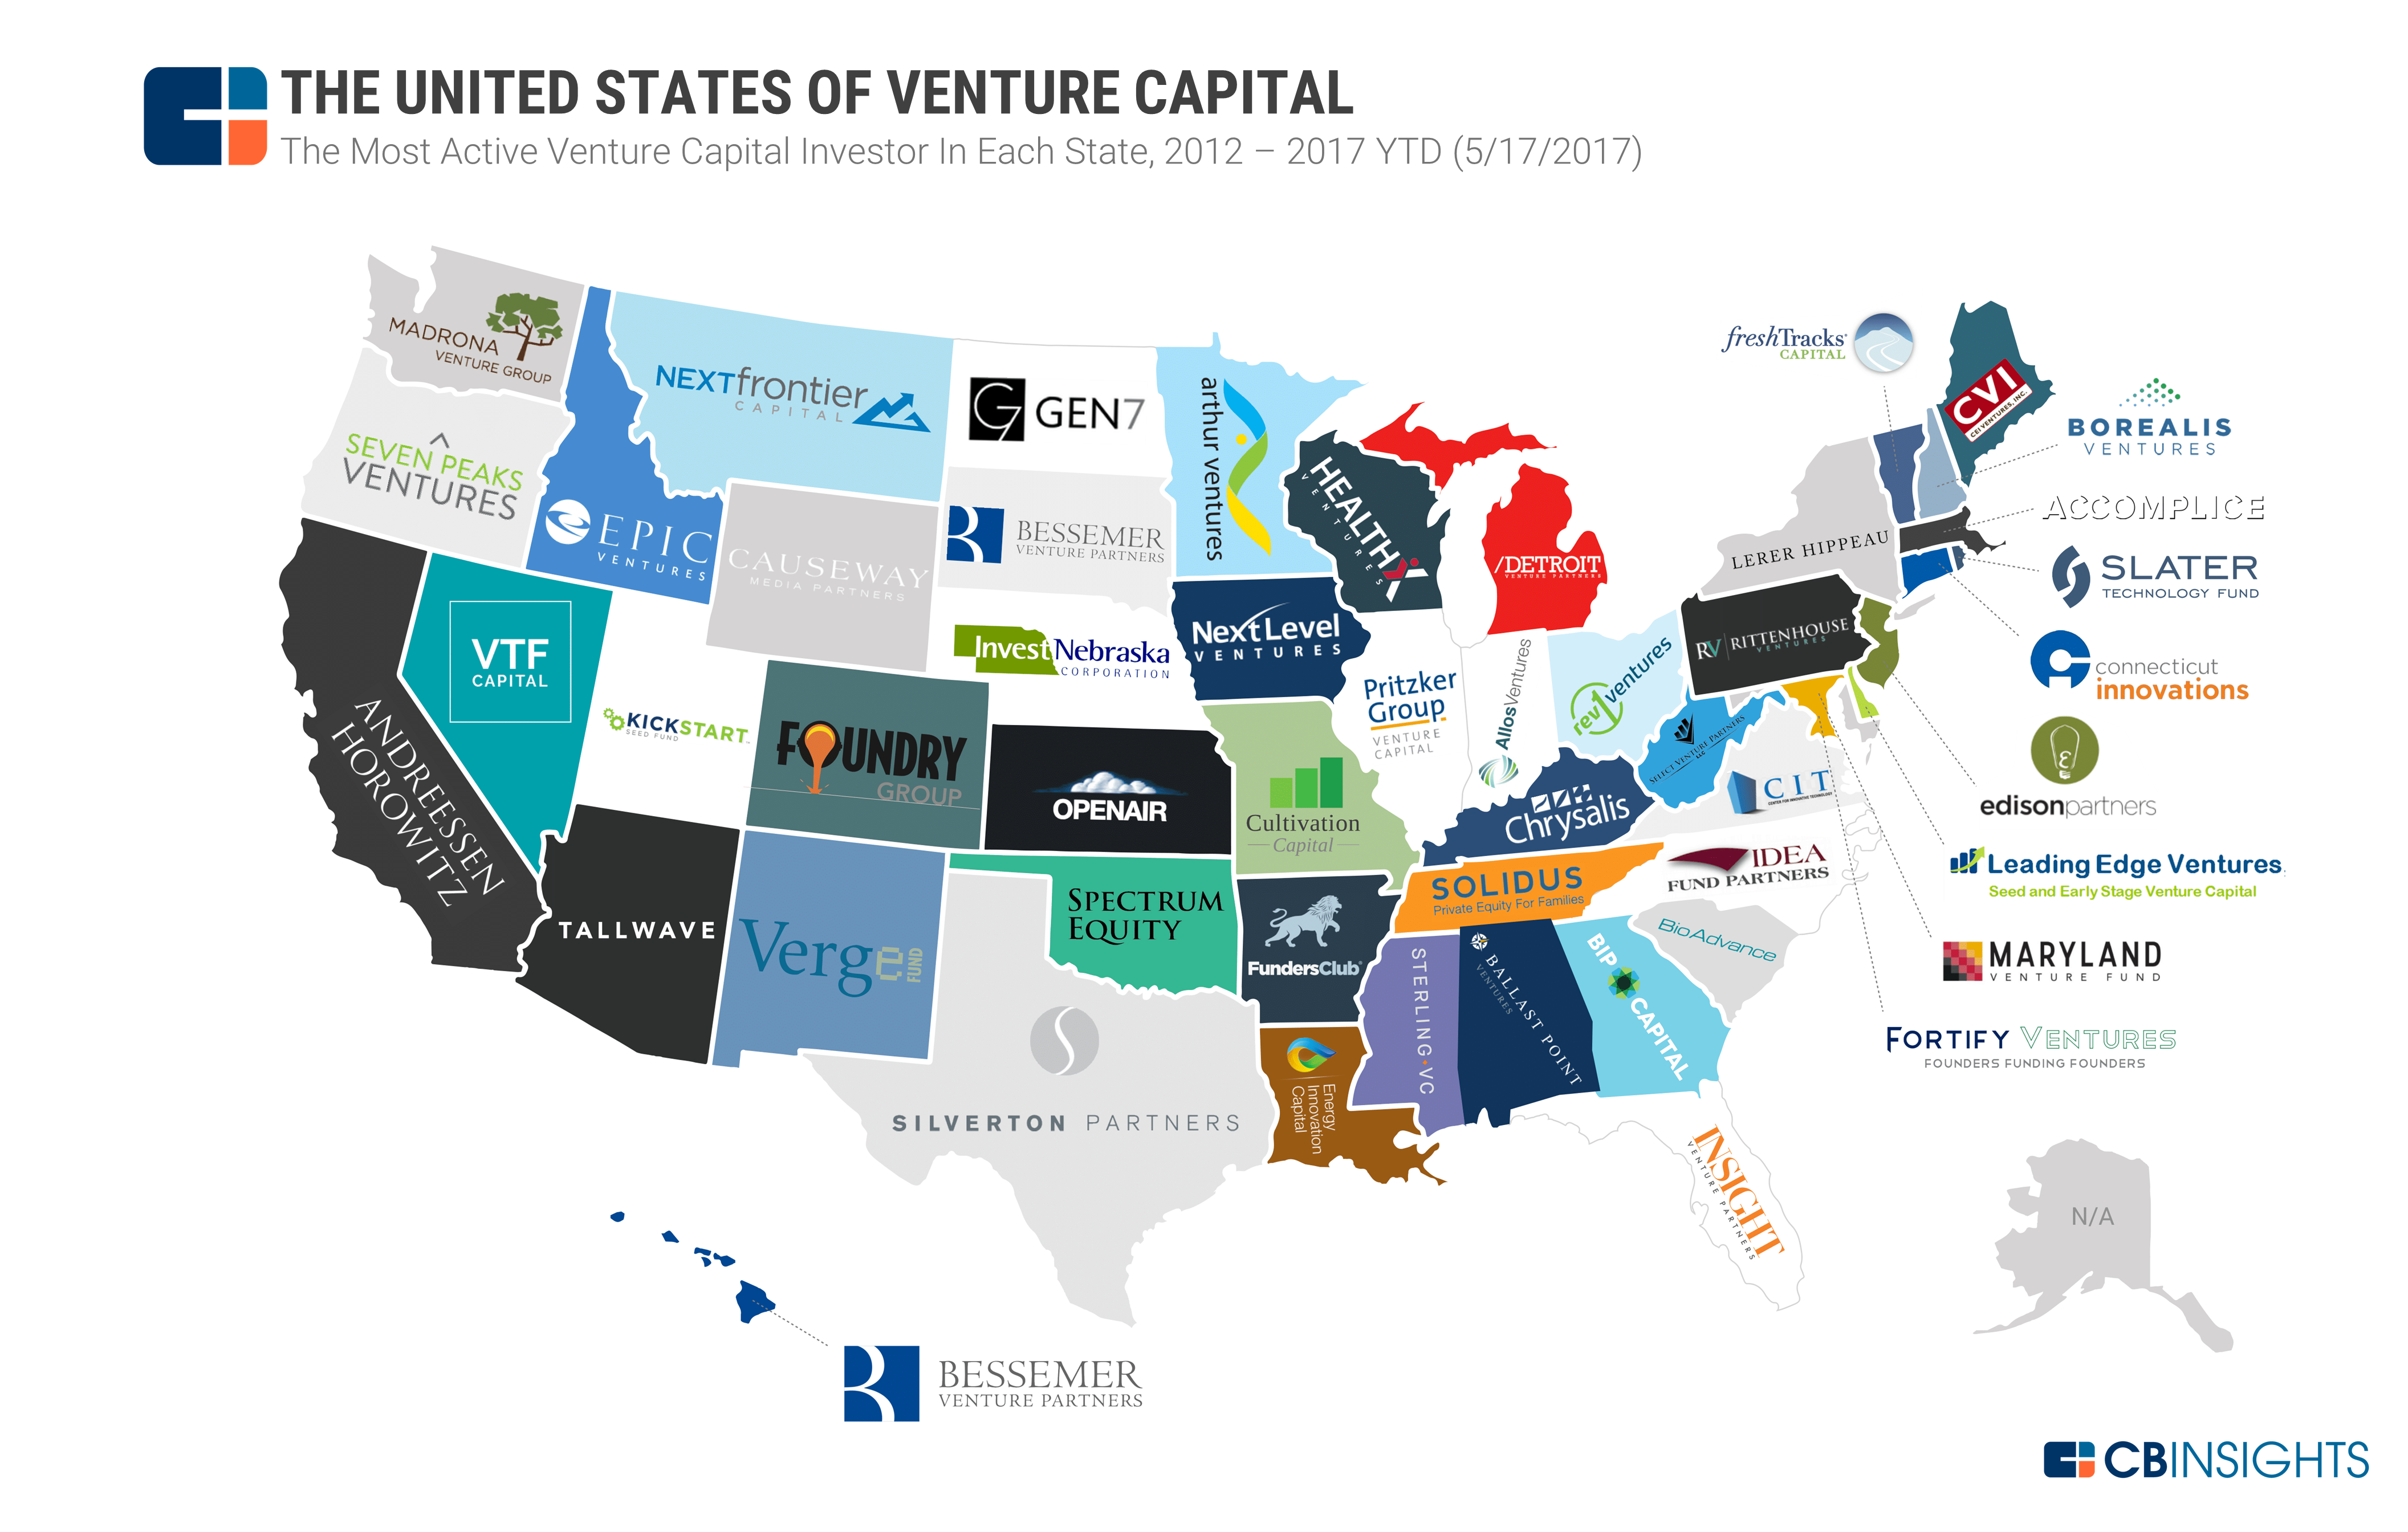 The United States of Venture Capitial Map